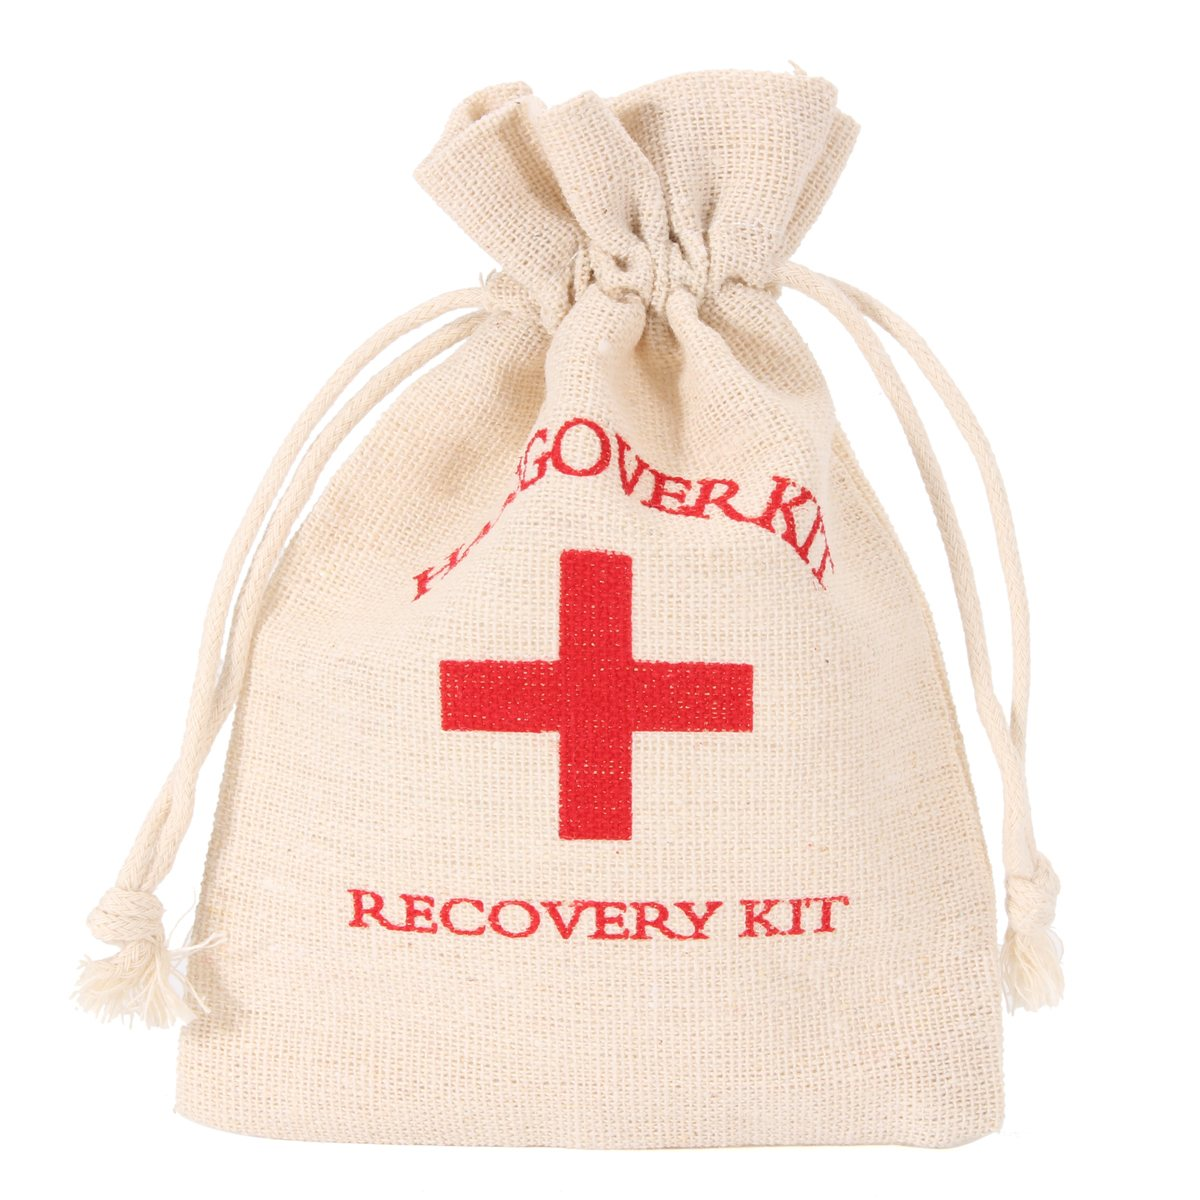 NEW Safurance 10pcs Set Hangover Survival Kit Cotton Linen Bags First Aid Party Storage Supply Emergency Kits kitcox70427fao4001 value kit first aid only inc alcohol cleansing pads fao4001 and glad forceflex tall kitchen drawstring bags cox70427